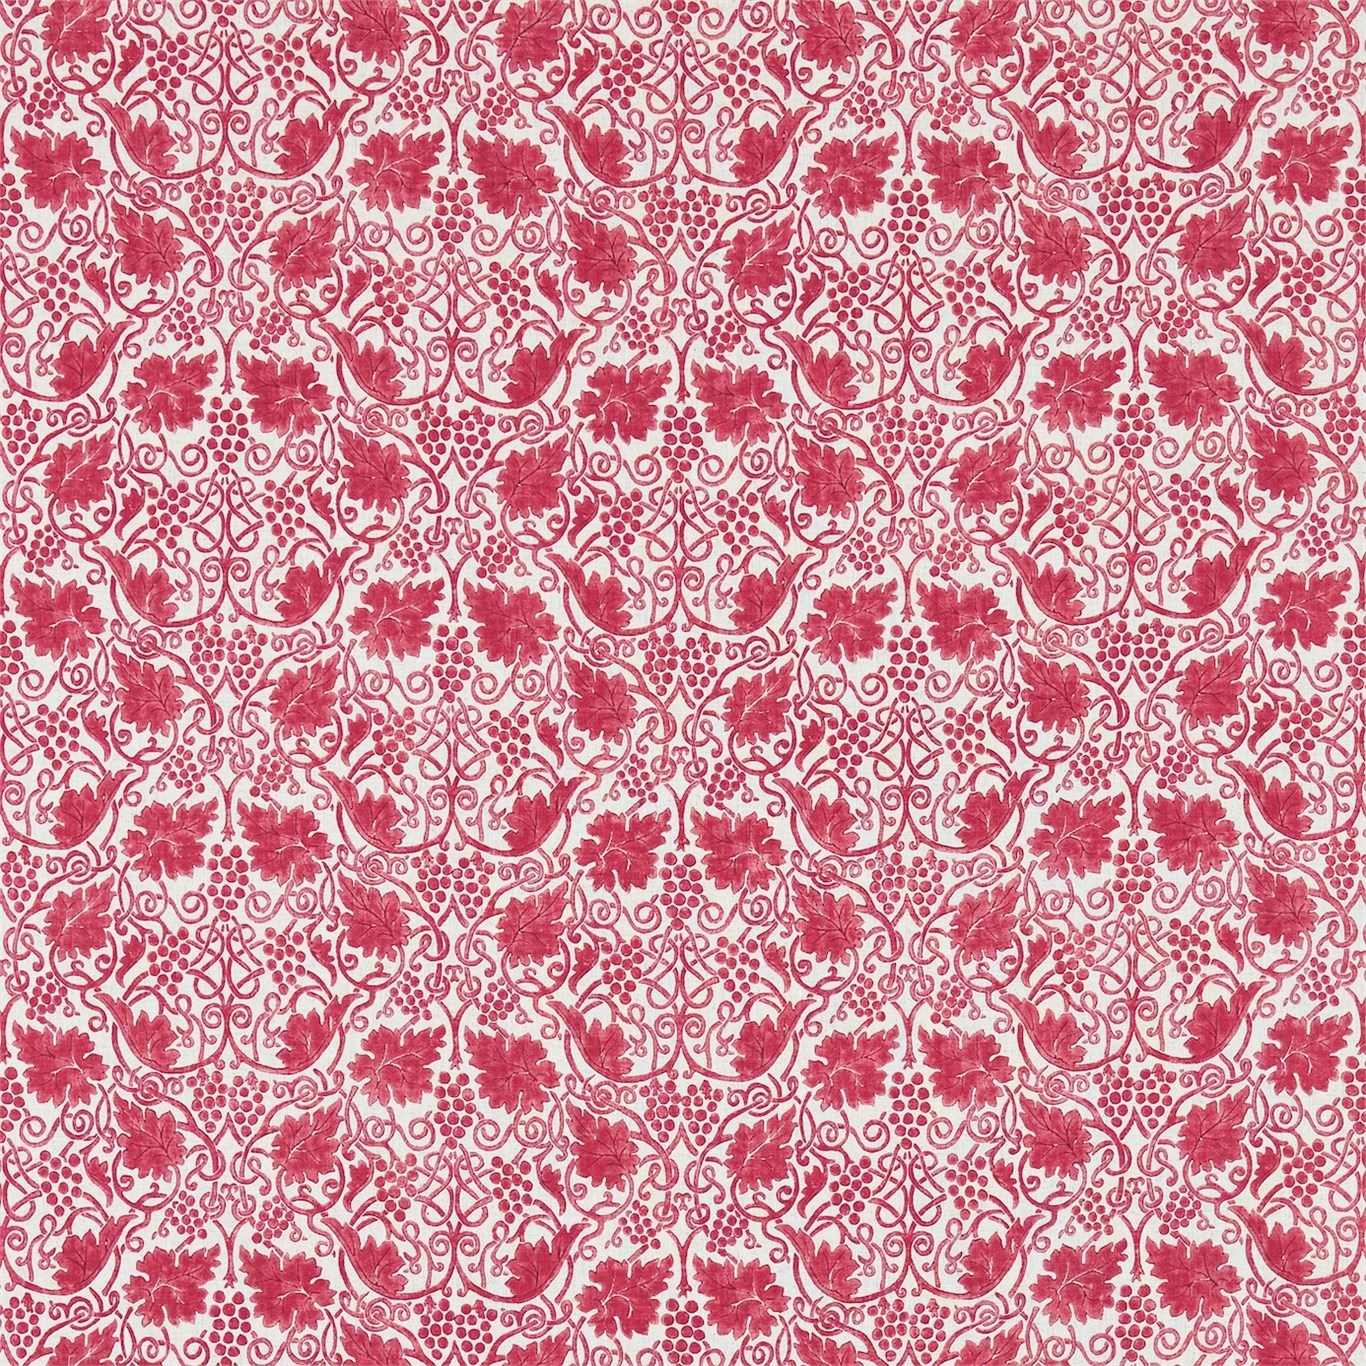 Image of Morris & Co Grapevine Rose Curtain Fabric 224477